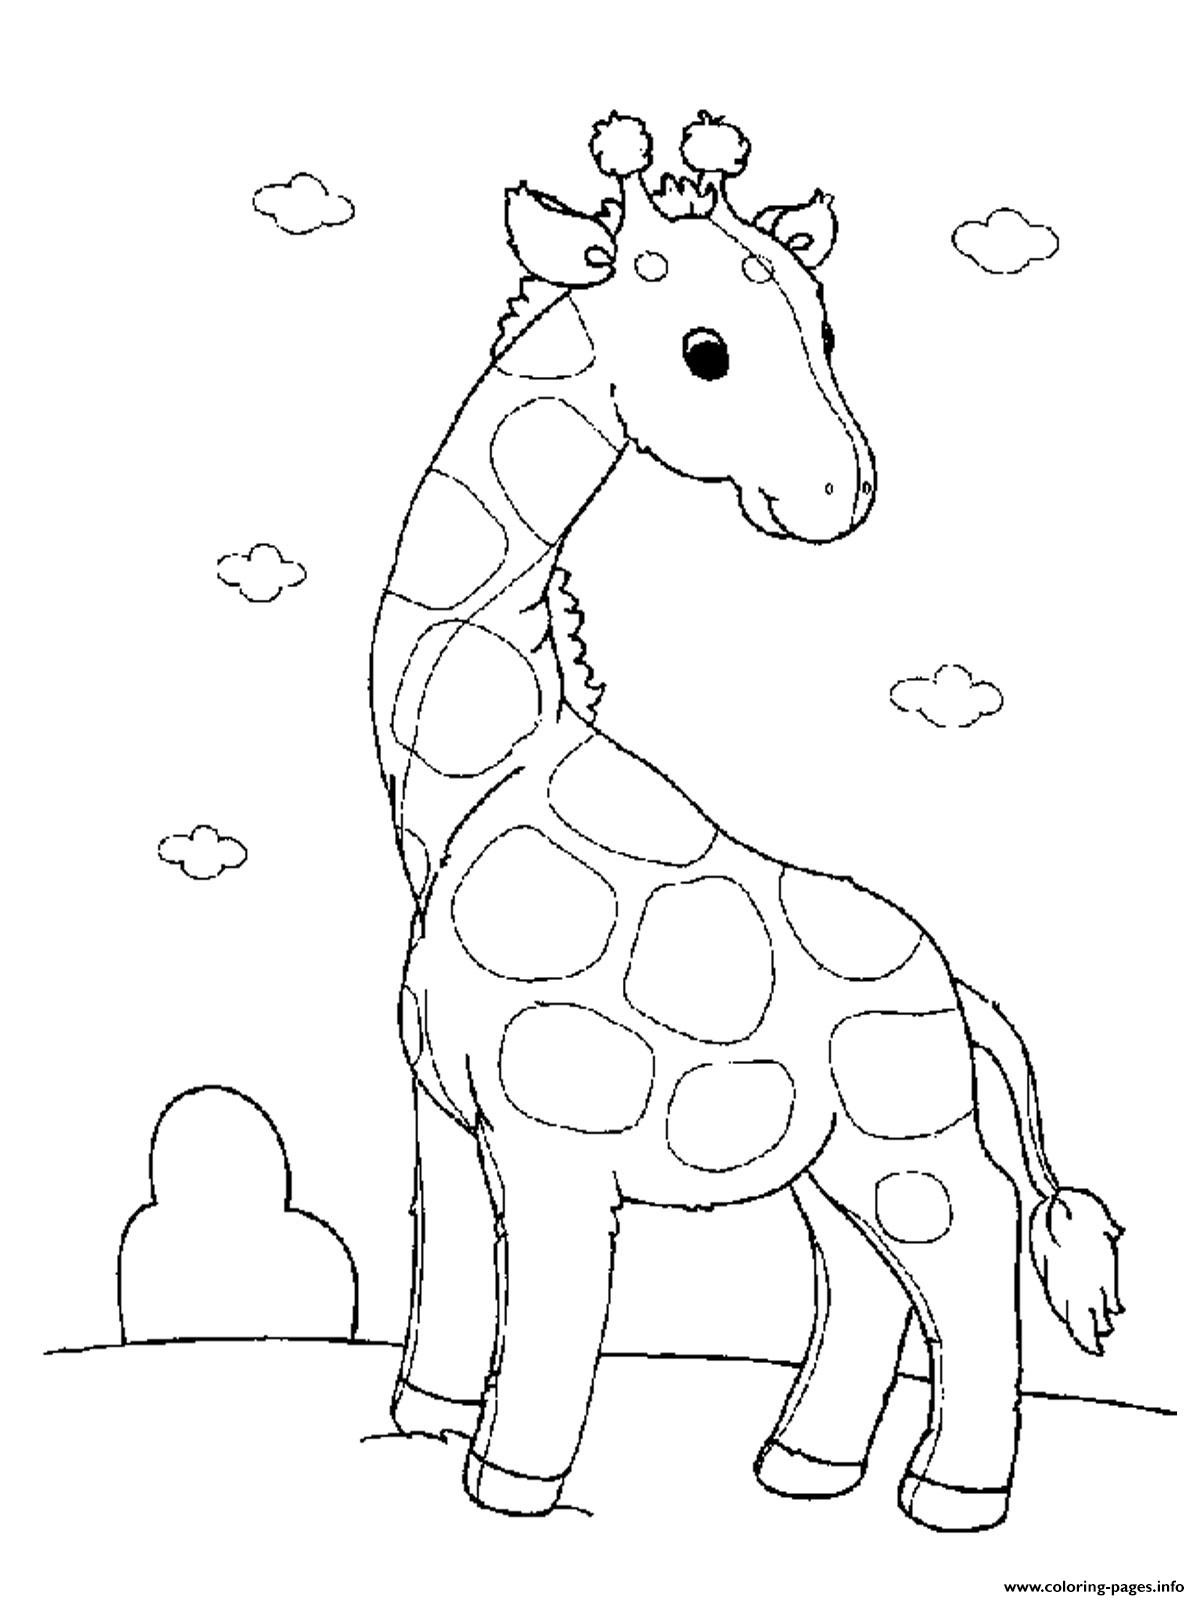 Best ideas about Animal Coloring Pages For Girls . Save or Pin Baby Giraffe S For Girls Animals Printable13b0 Coloring Now.